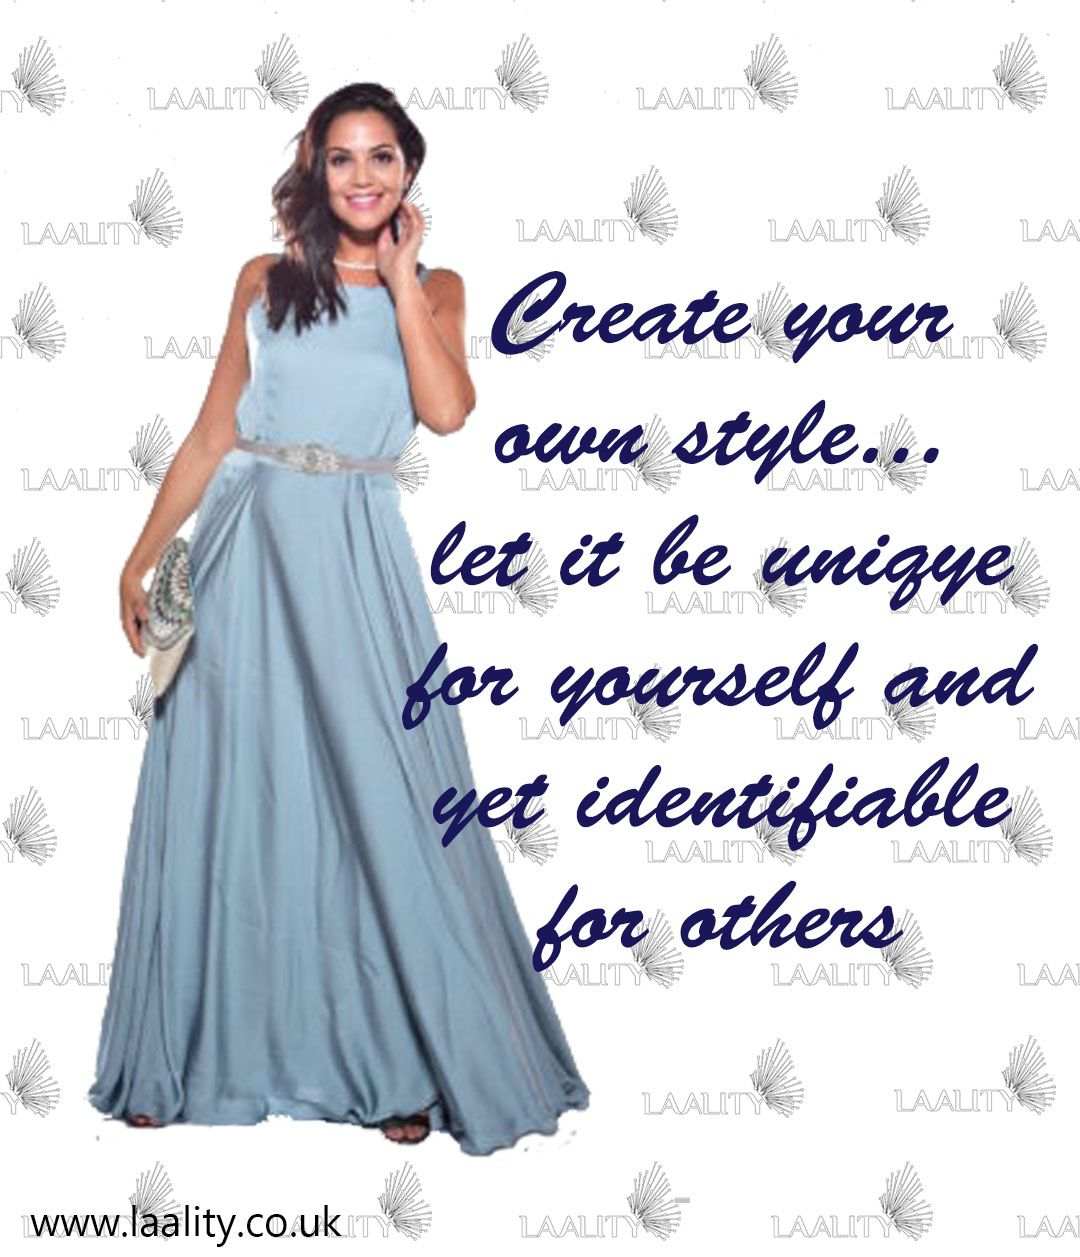 Enjoy a 20% discount on first order and 5% on any orders will be donated for the COVID-19.  Check out our website @ www.laality.co.uk  #laality #indowestern #dress #fashion #style #ootd #dresses #model #outfit #like #beautiful #shopping #instafashion #beauty #eveninggowns #instagood #girl #fashionblogger #weddingdress #fashionista #bhfyp #follow #stylish #design #clothing #designer #casual #midi #party #comfyoutfit #COVID19UK